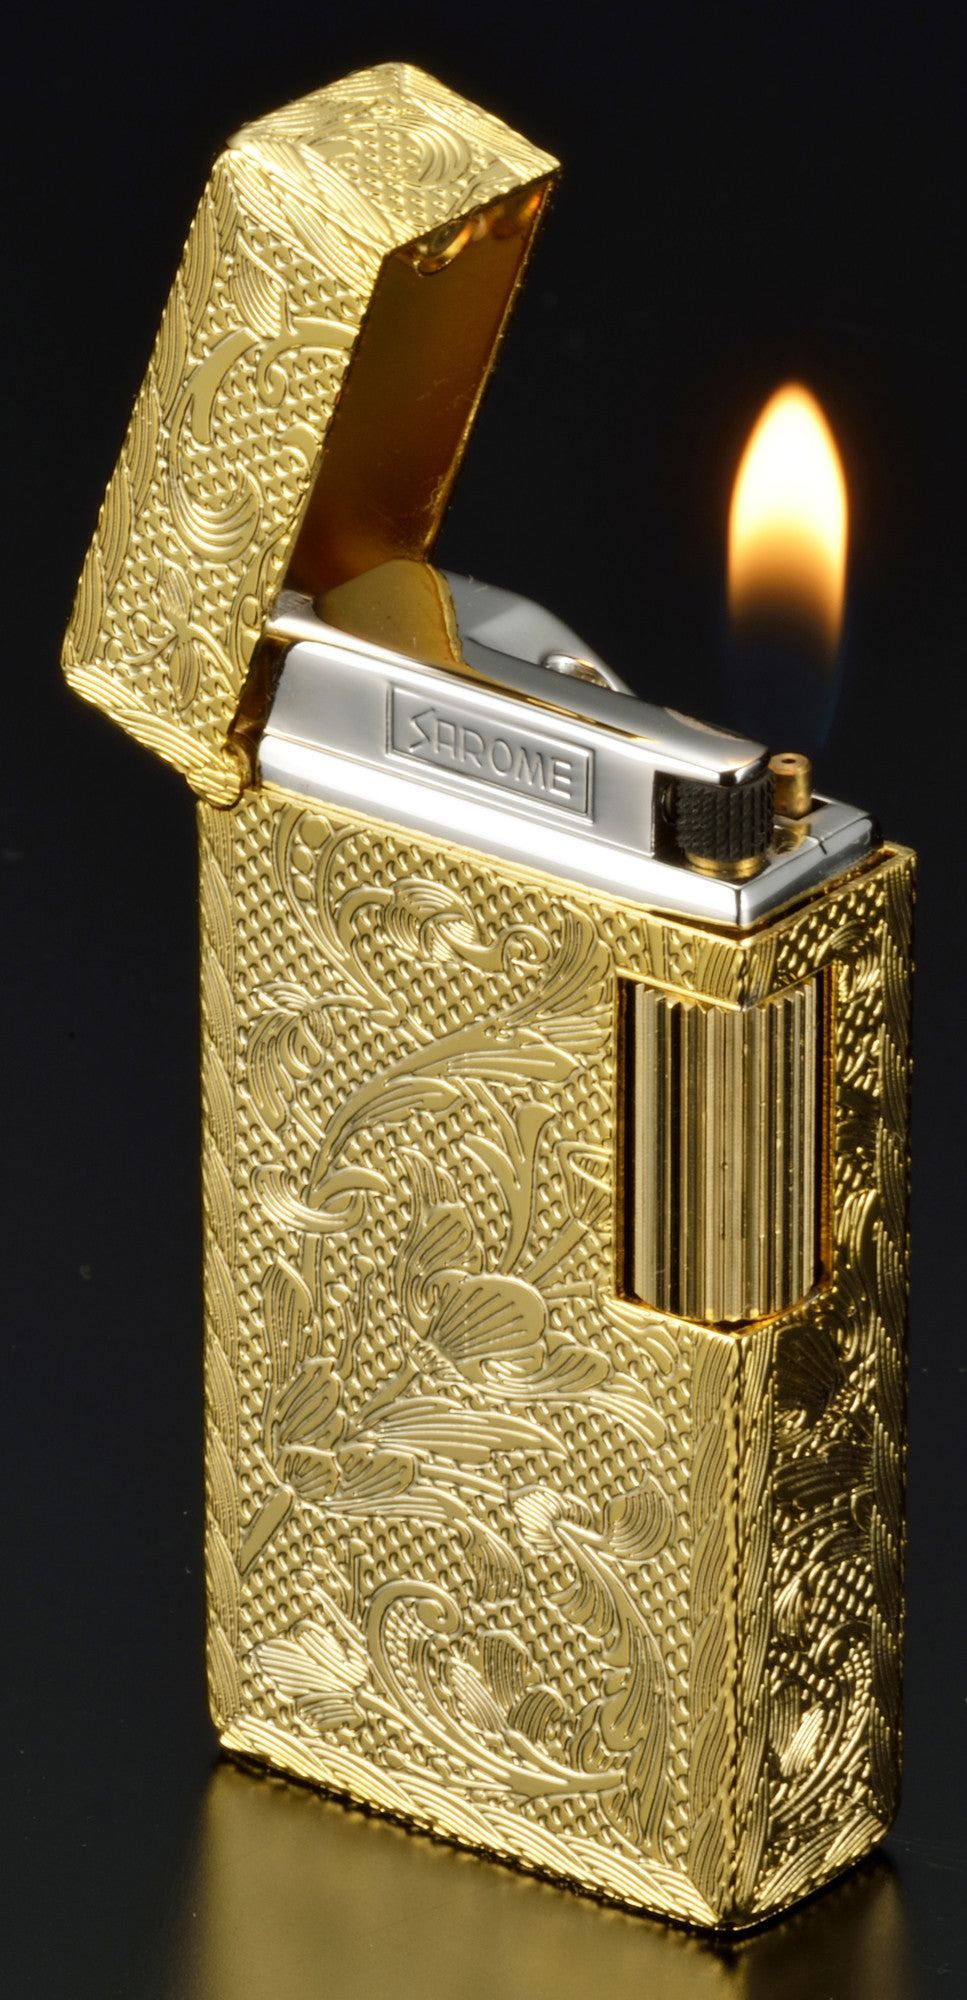 Sarome Flint Cigarette Lighter SD1-52 Antique silver / Cross diamond cut